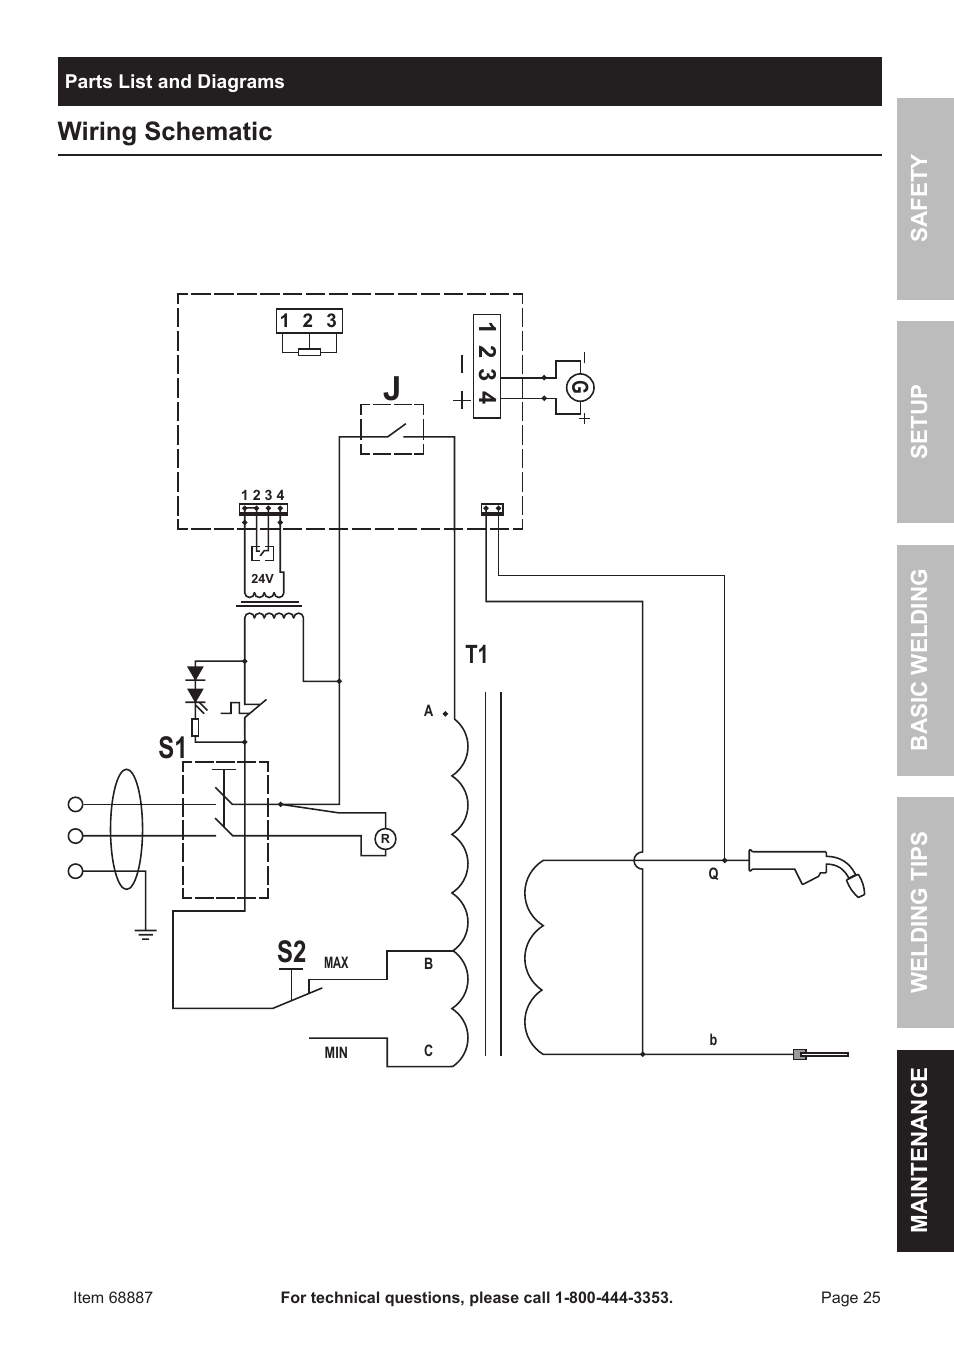 351 pcm wiring diagram wiring diagram1976 351 pcm wire diagram wiring schematic diagram1976 351 pcm wire diagram wiring library pcm wiring